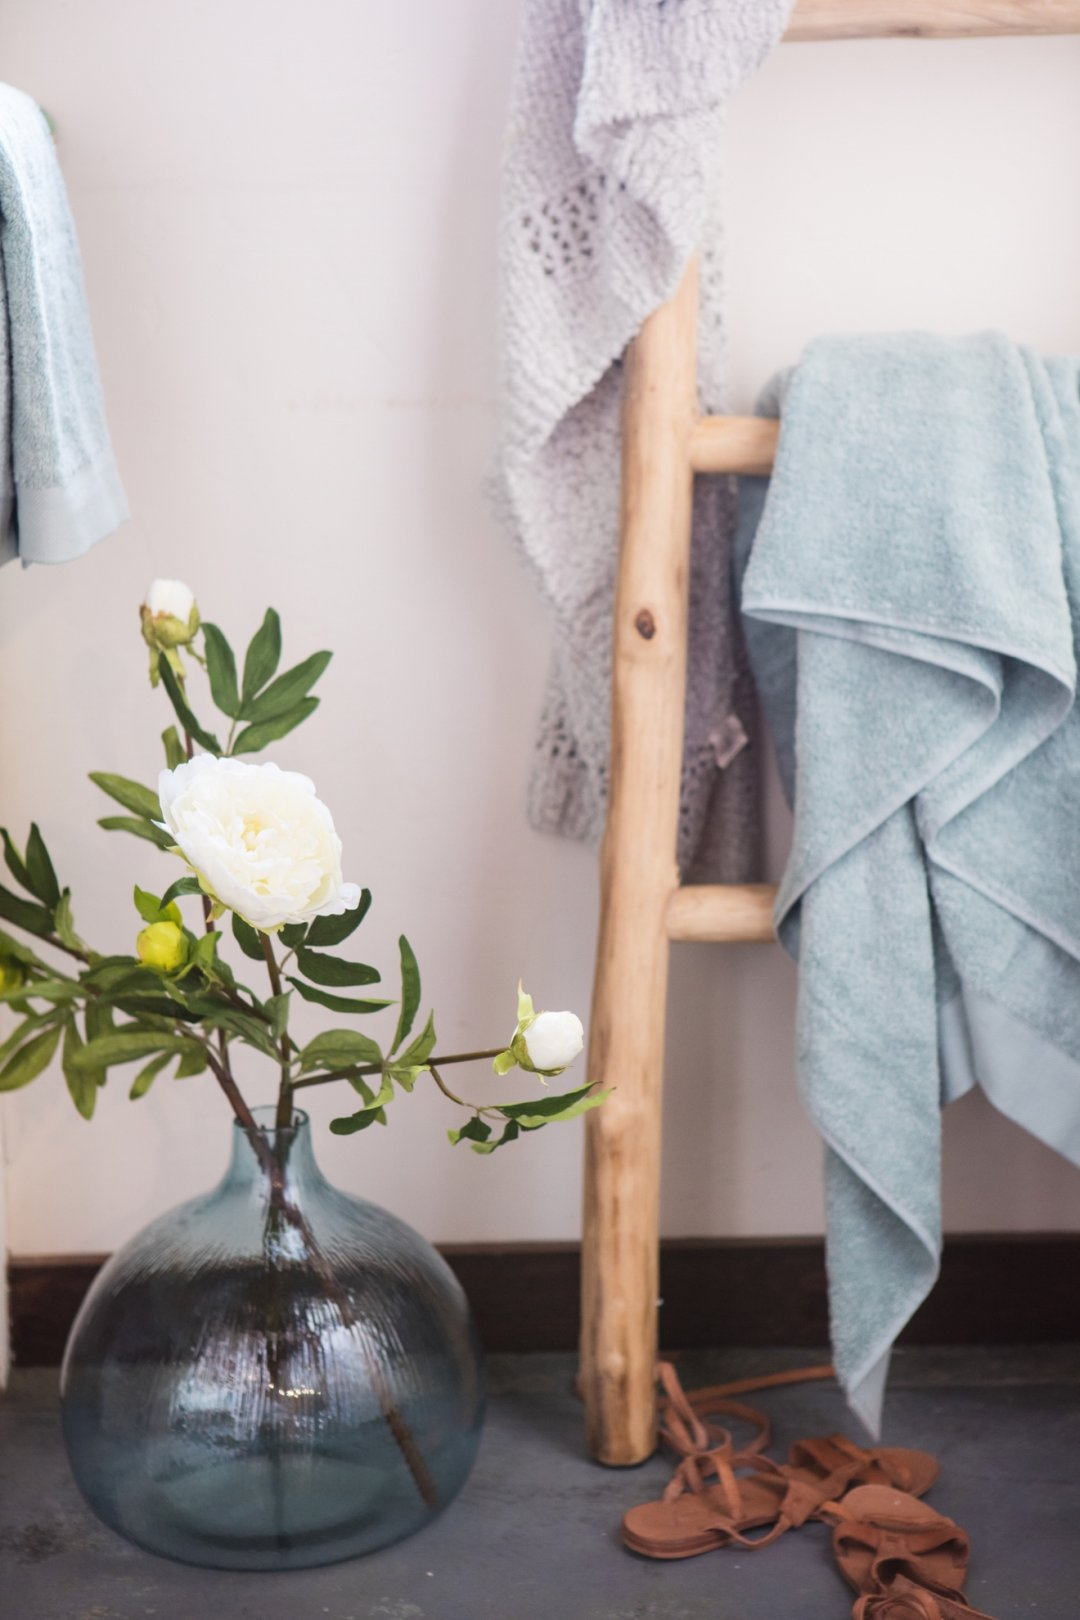 Ladder with towels and blue vase with flowers